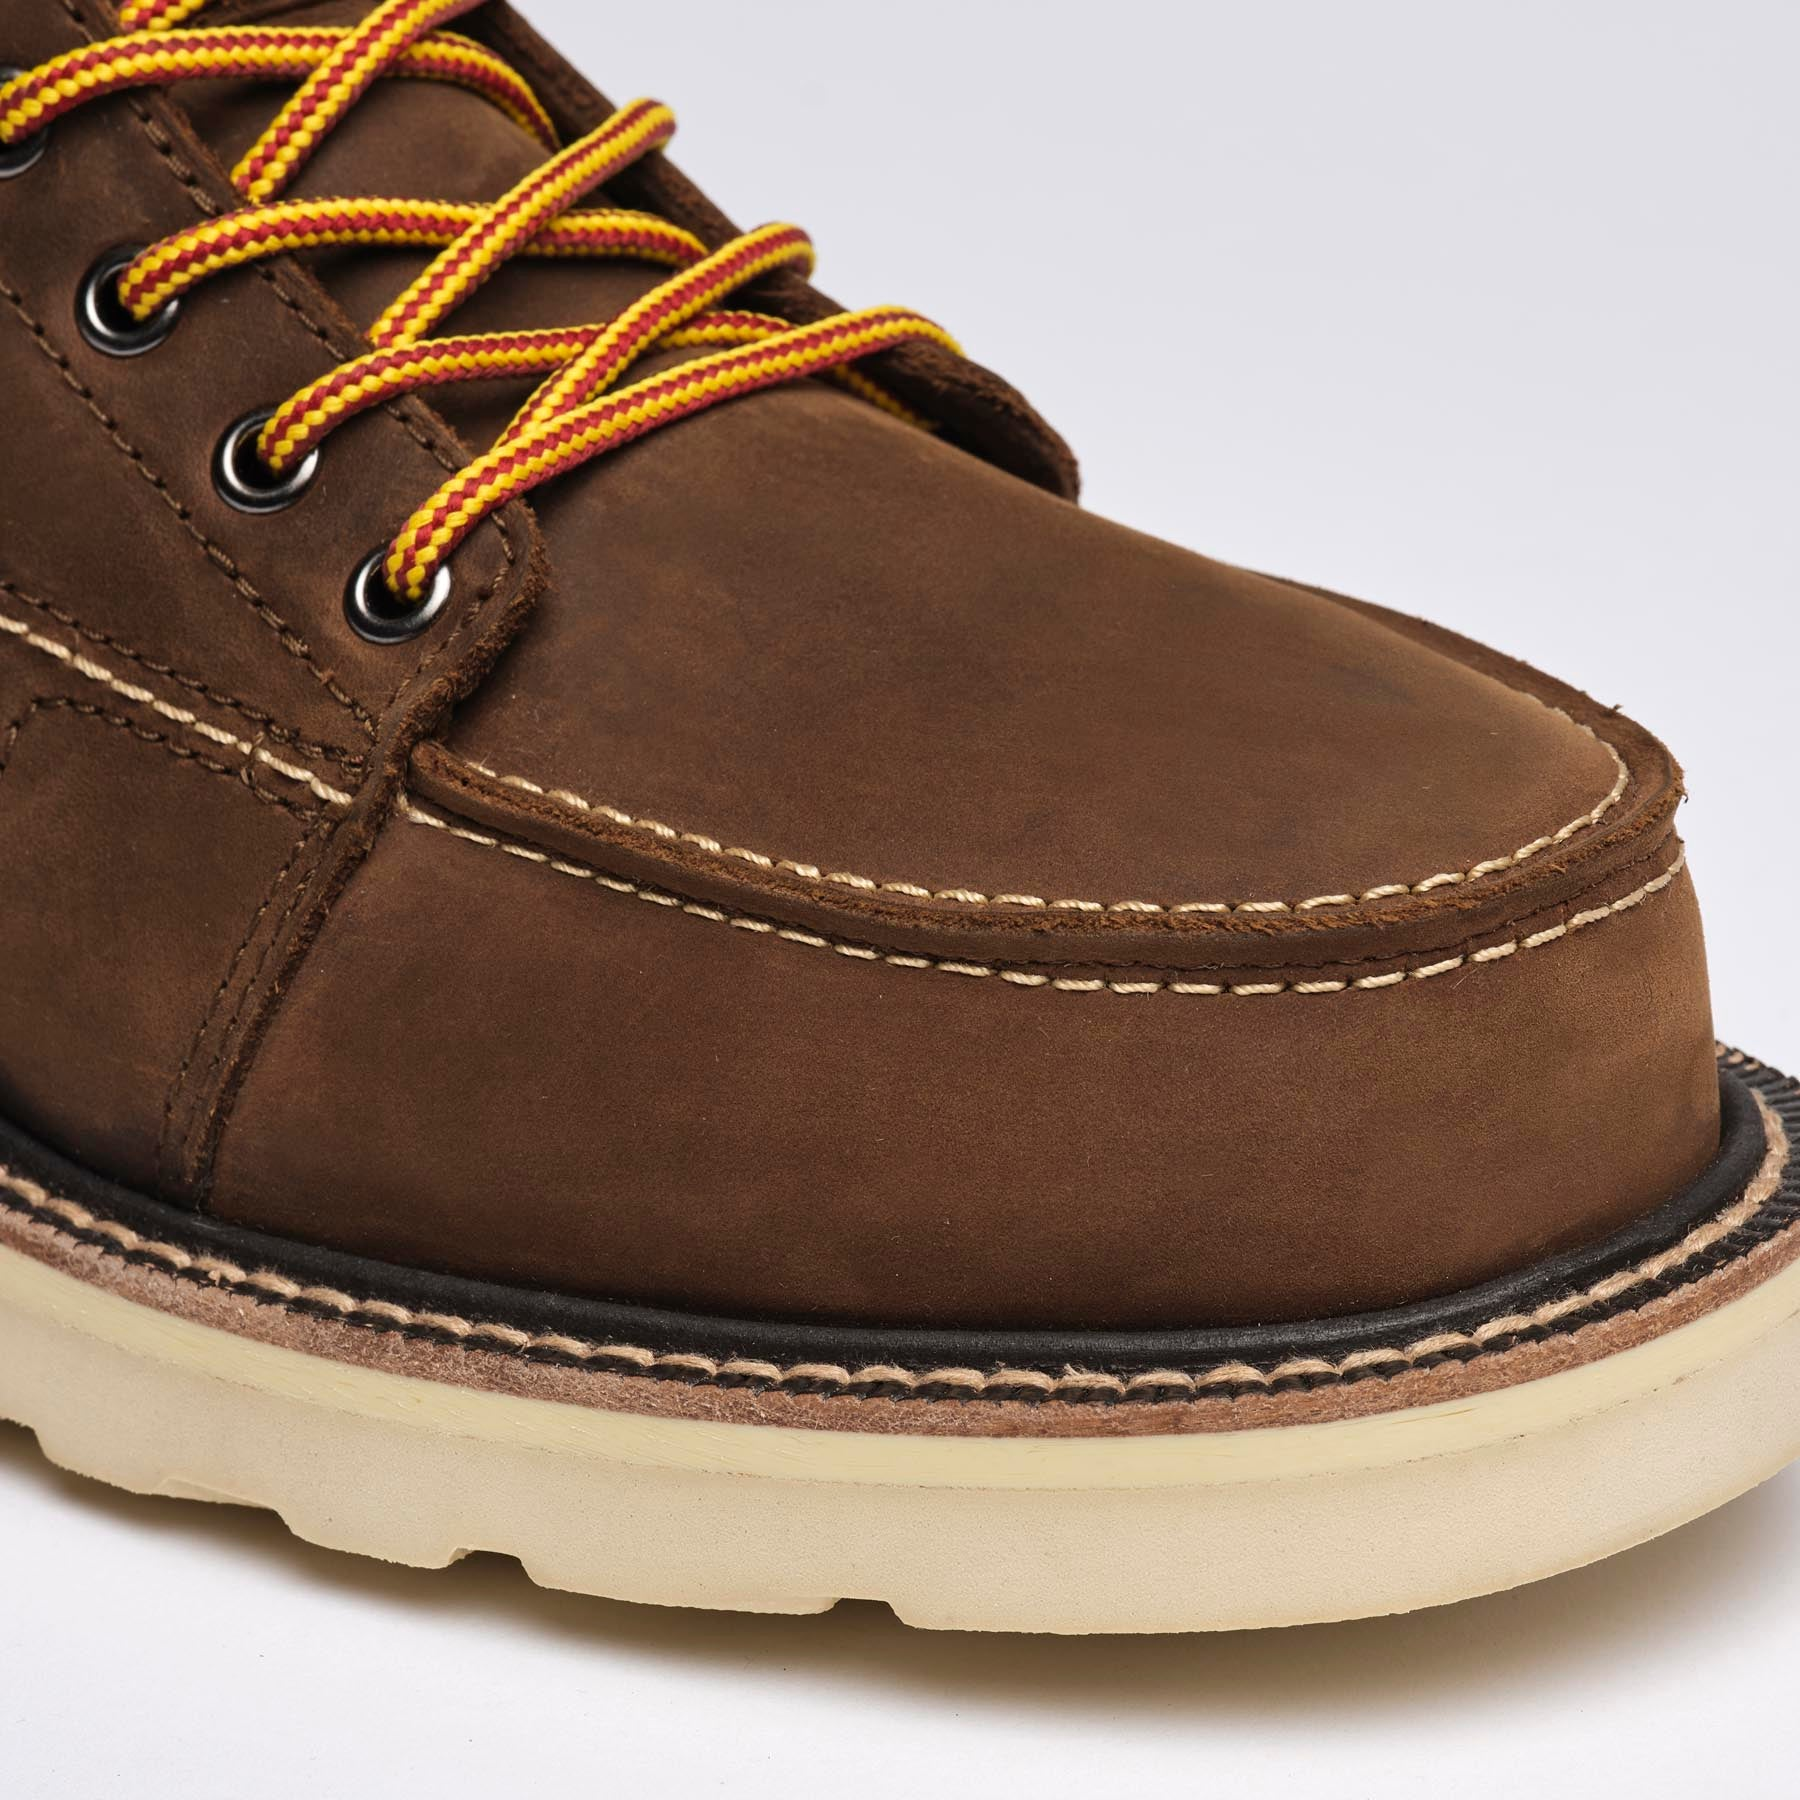 details matter - qltyobjective.com - The DNVR Steel-toe boots are built tough. Feature asymmetrical toe caps that maximize protection from falling objects and reduce the severity of injuries that may occur in the workplace.